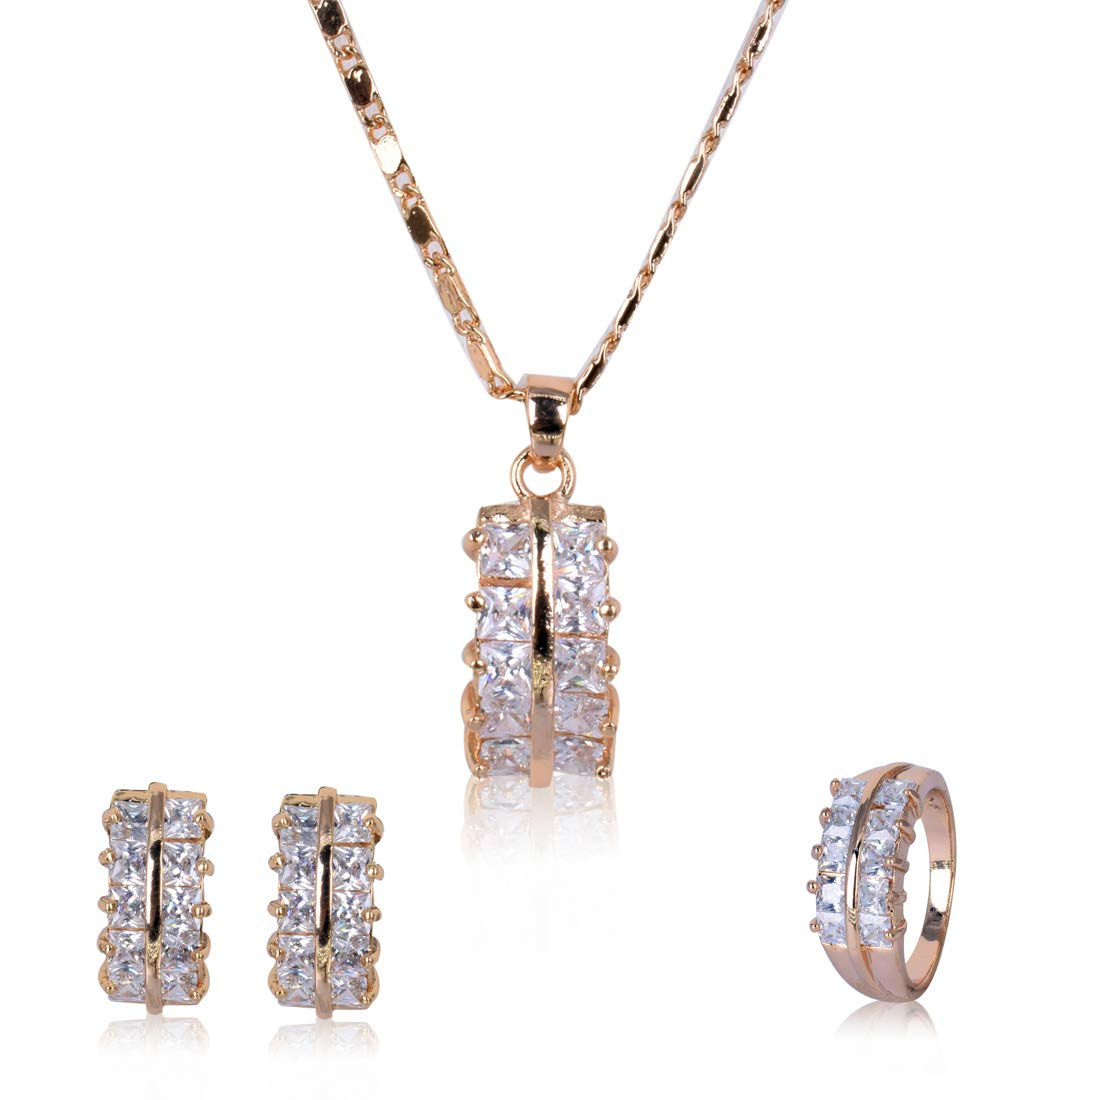 Jewellery everstylish reviews